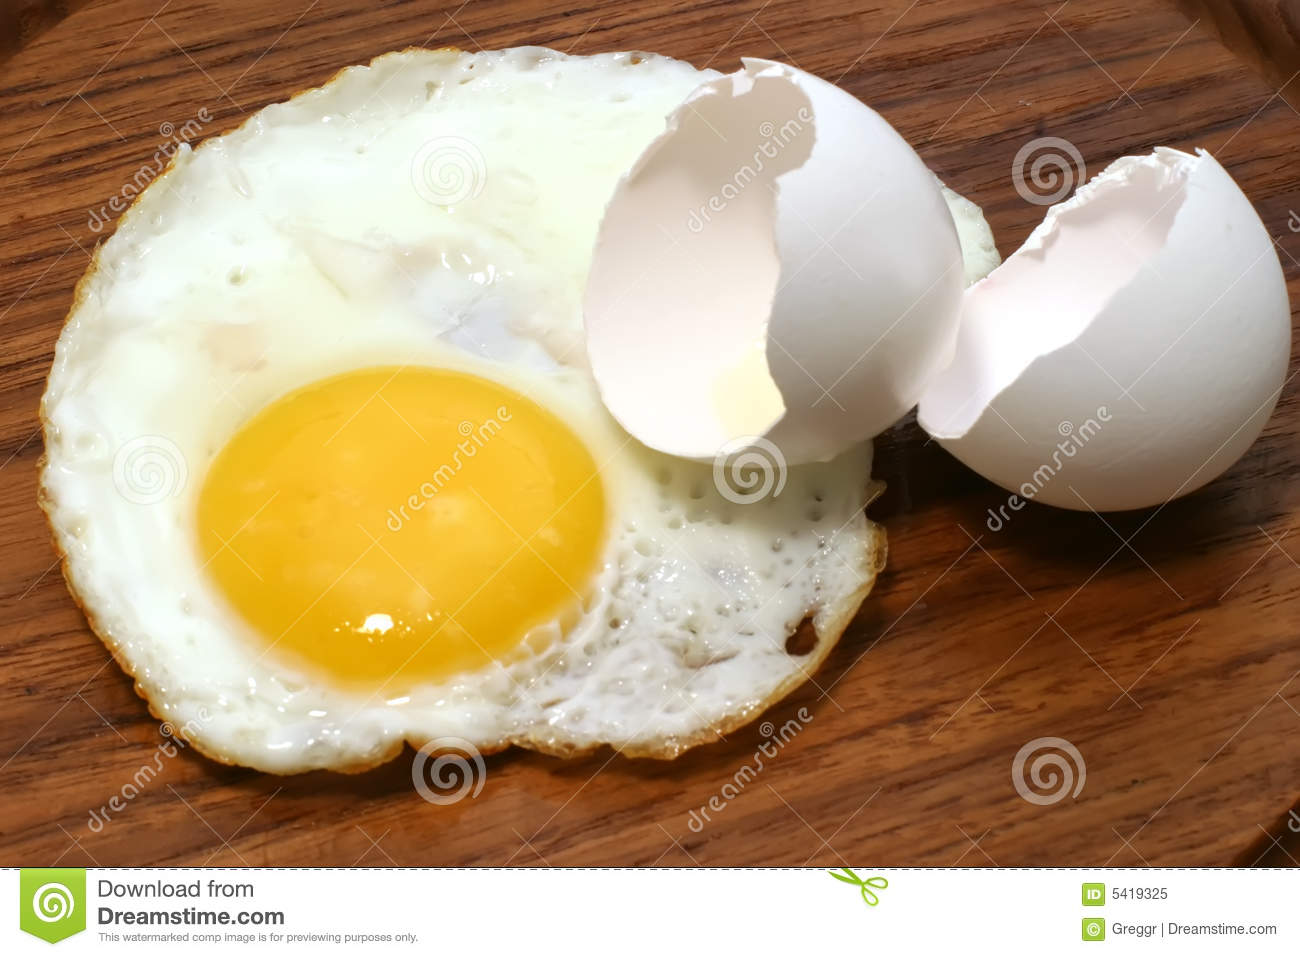 Fried Eggs On Plate Royalty Free Stock Images - Image ...  |Fried Eggs On A Plate